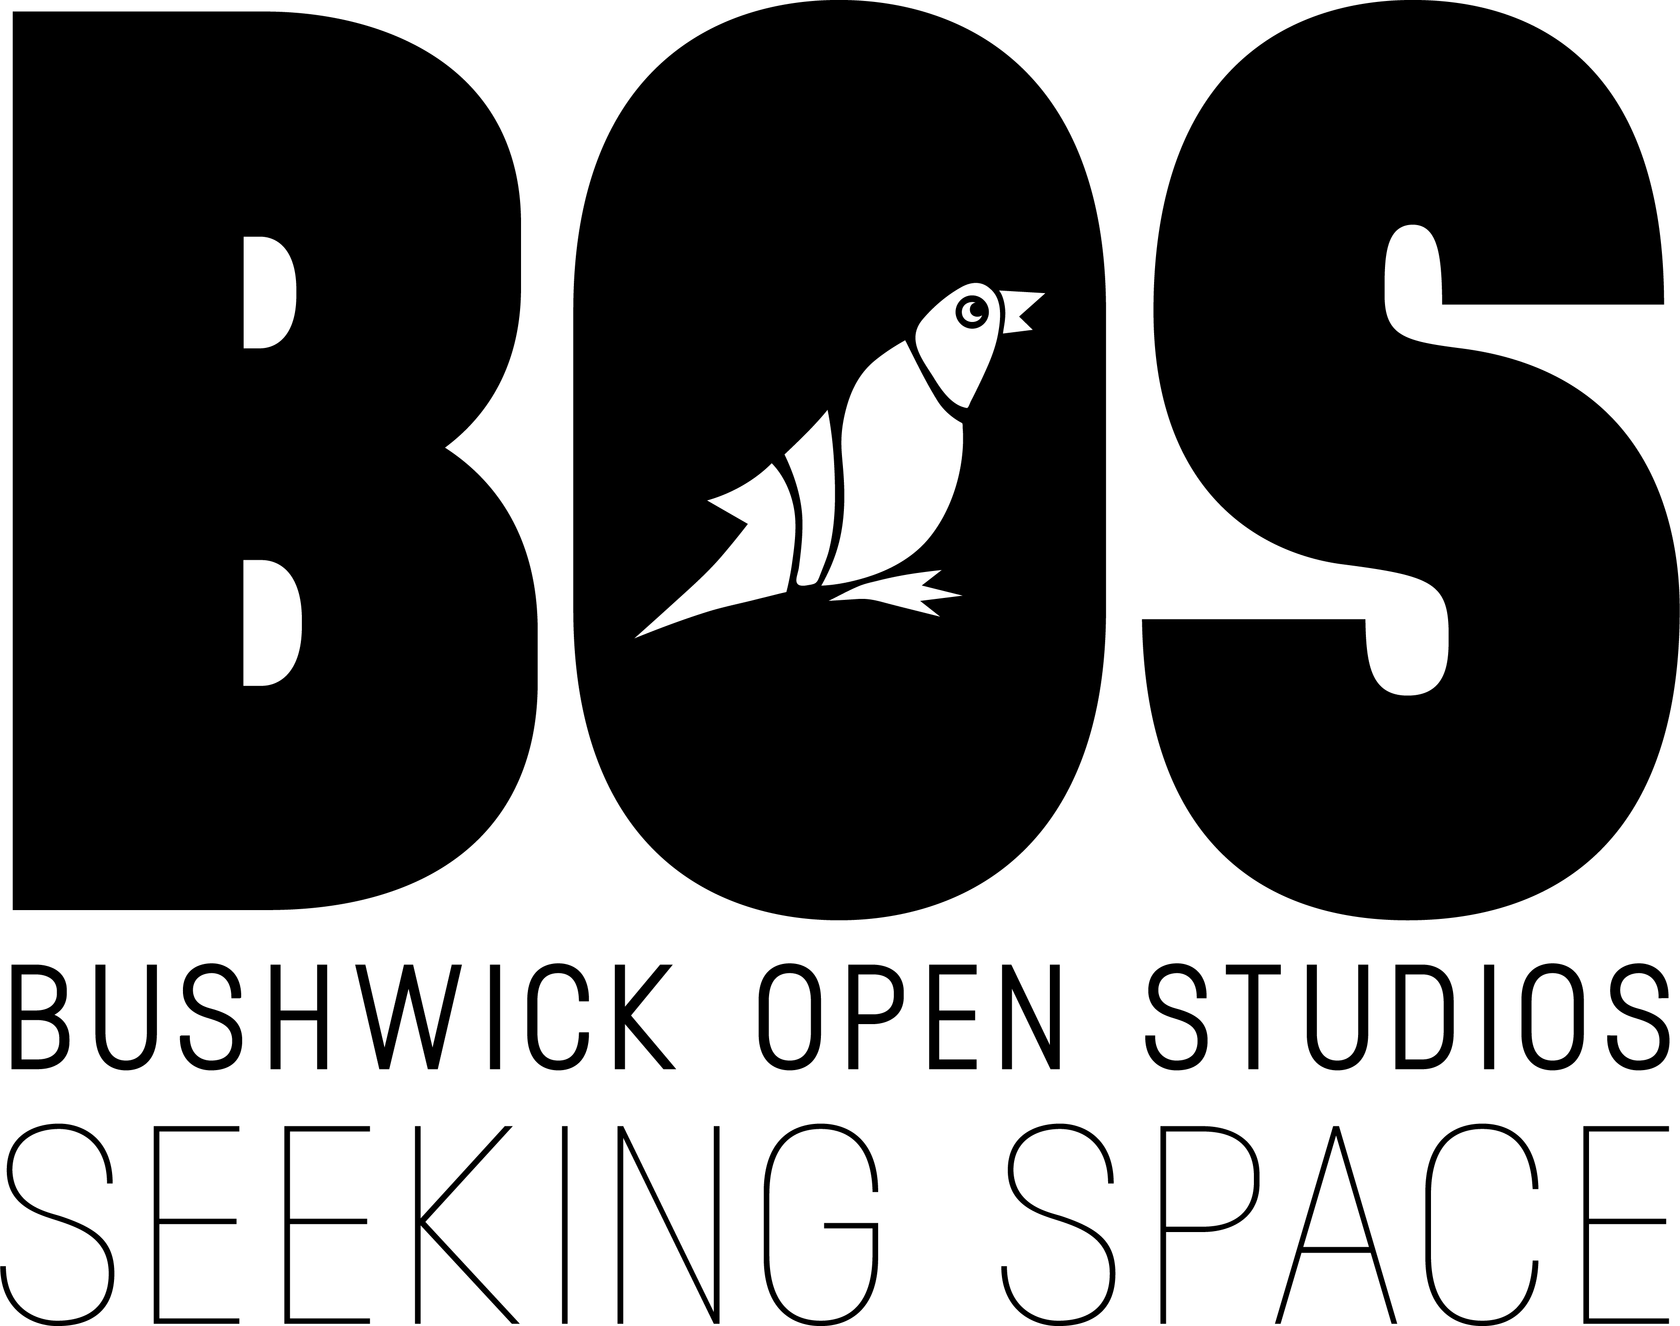 BOS-Seeking-Space-logo.png